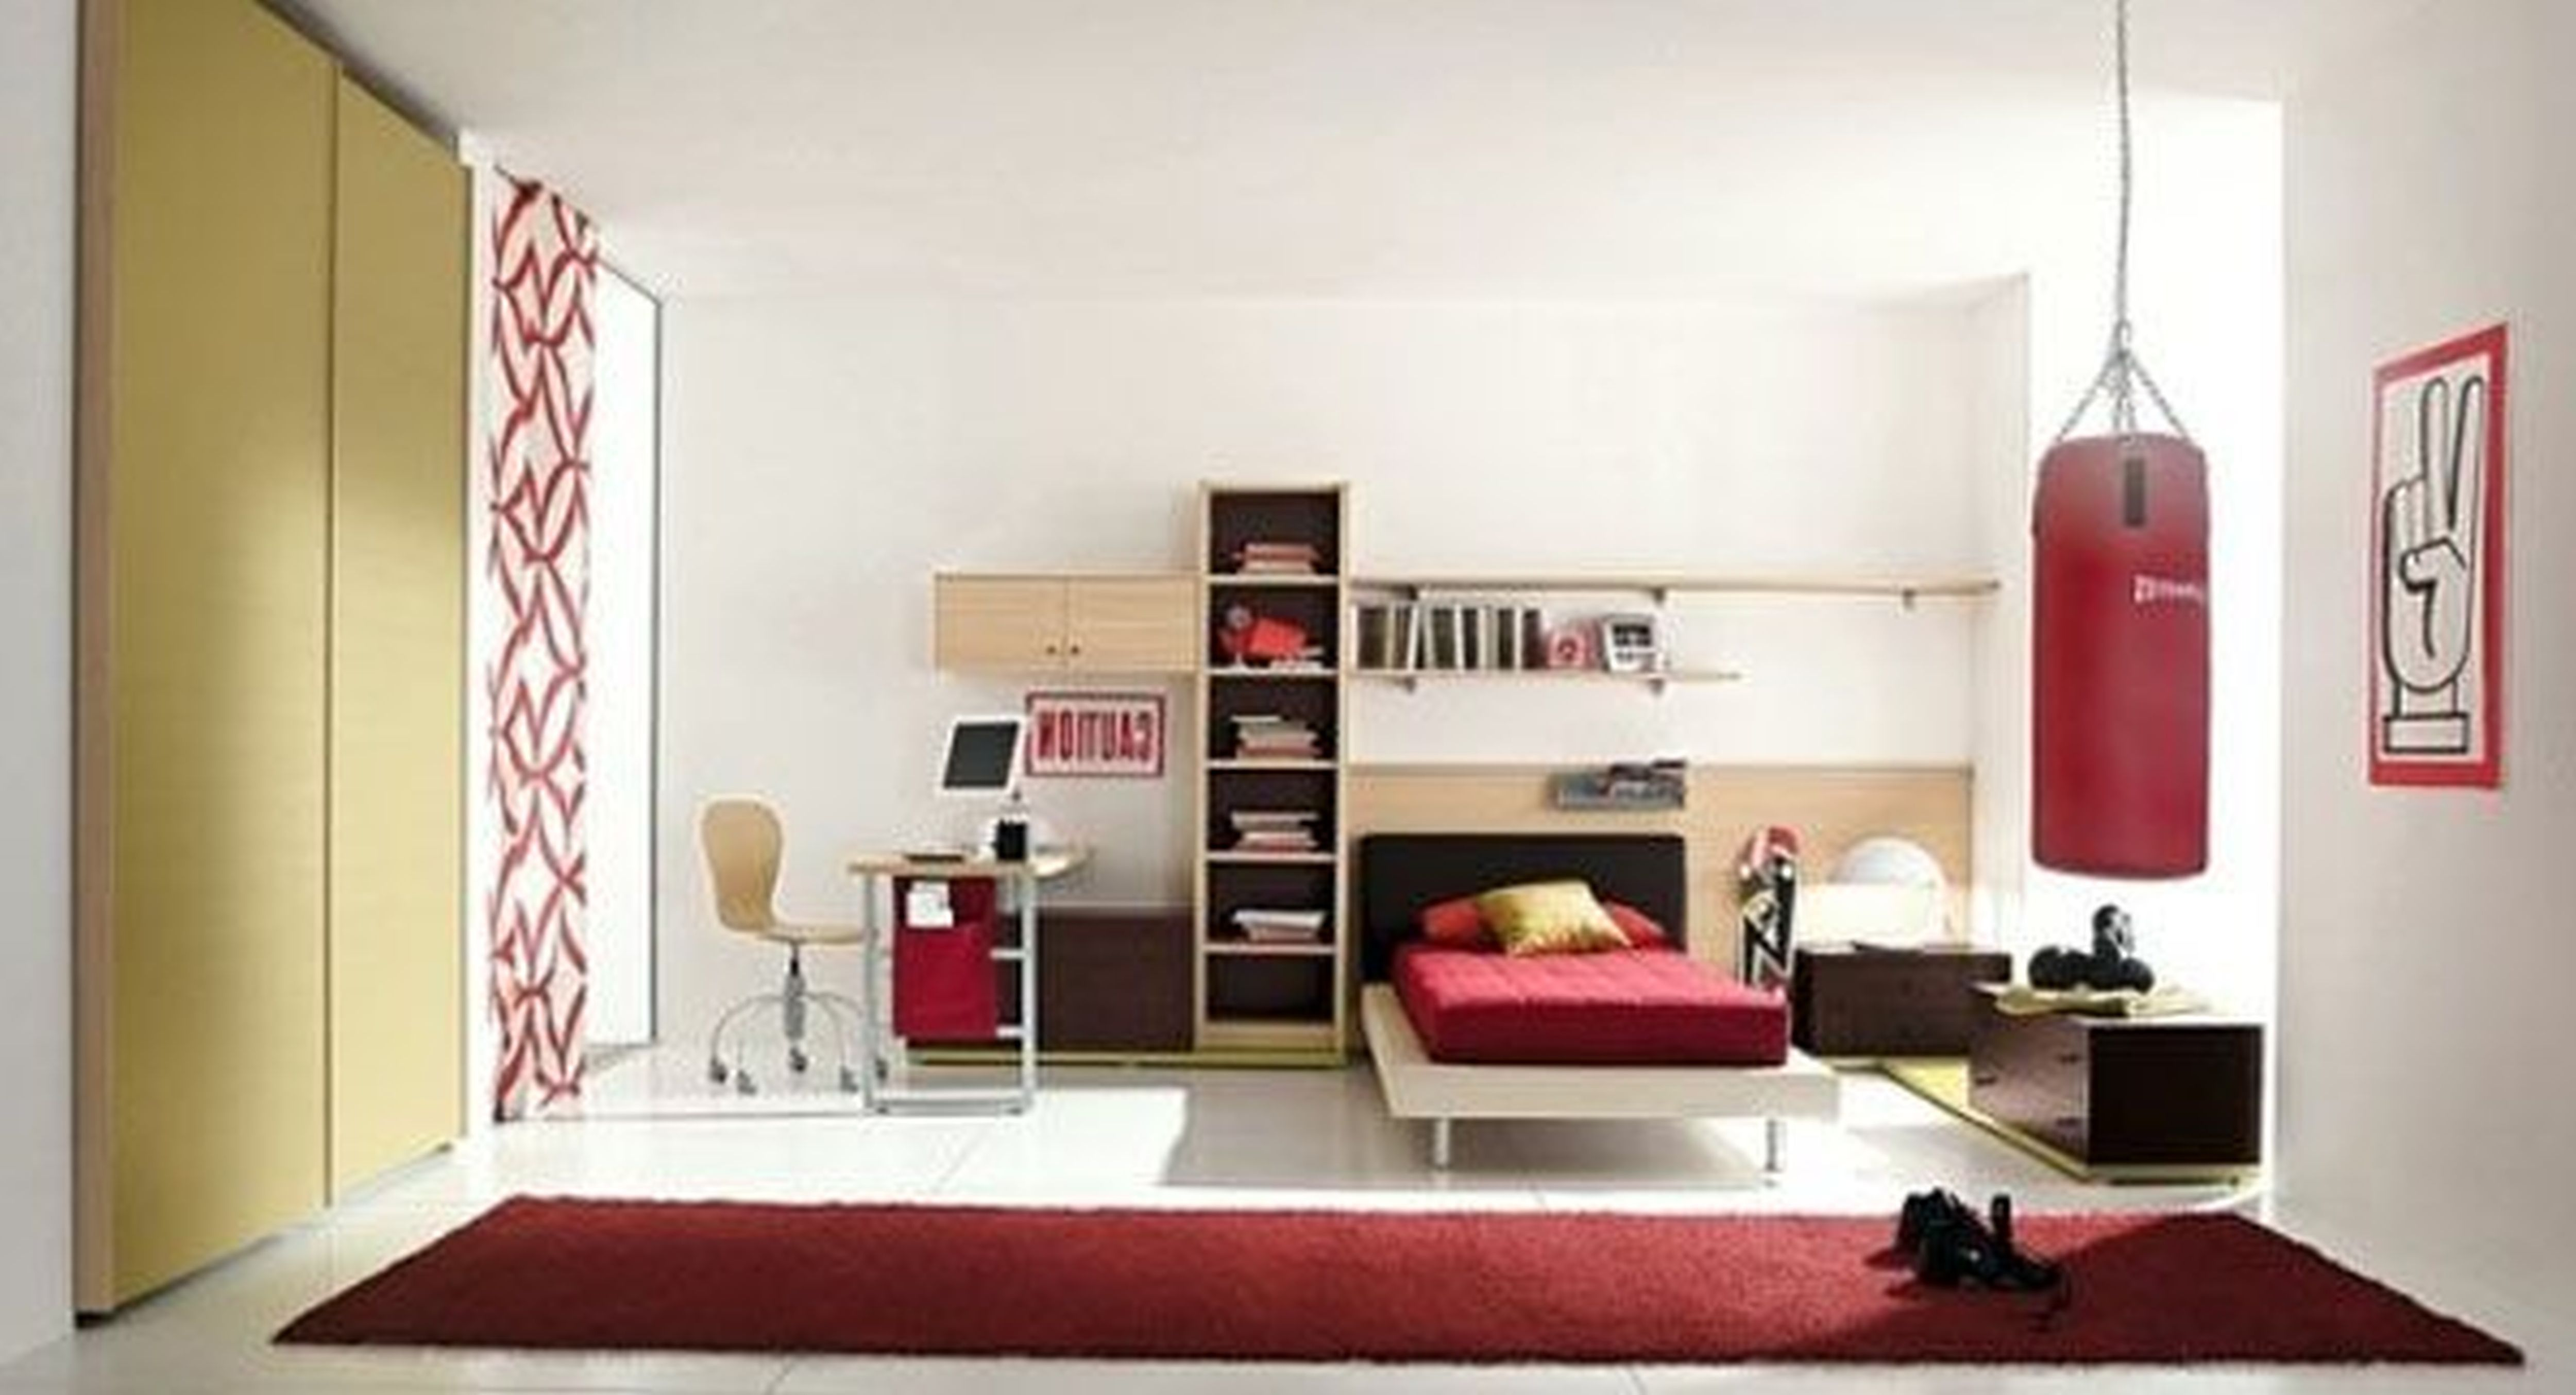 Bedrooms Designs For Girls Bedroom Room Designs For Teens Really Cool Beds Teenagers Single